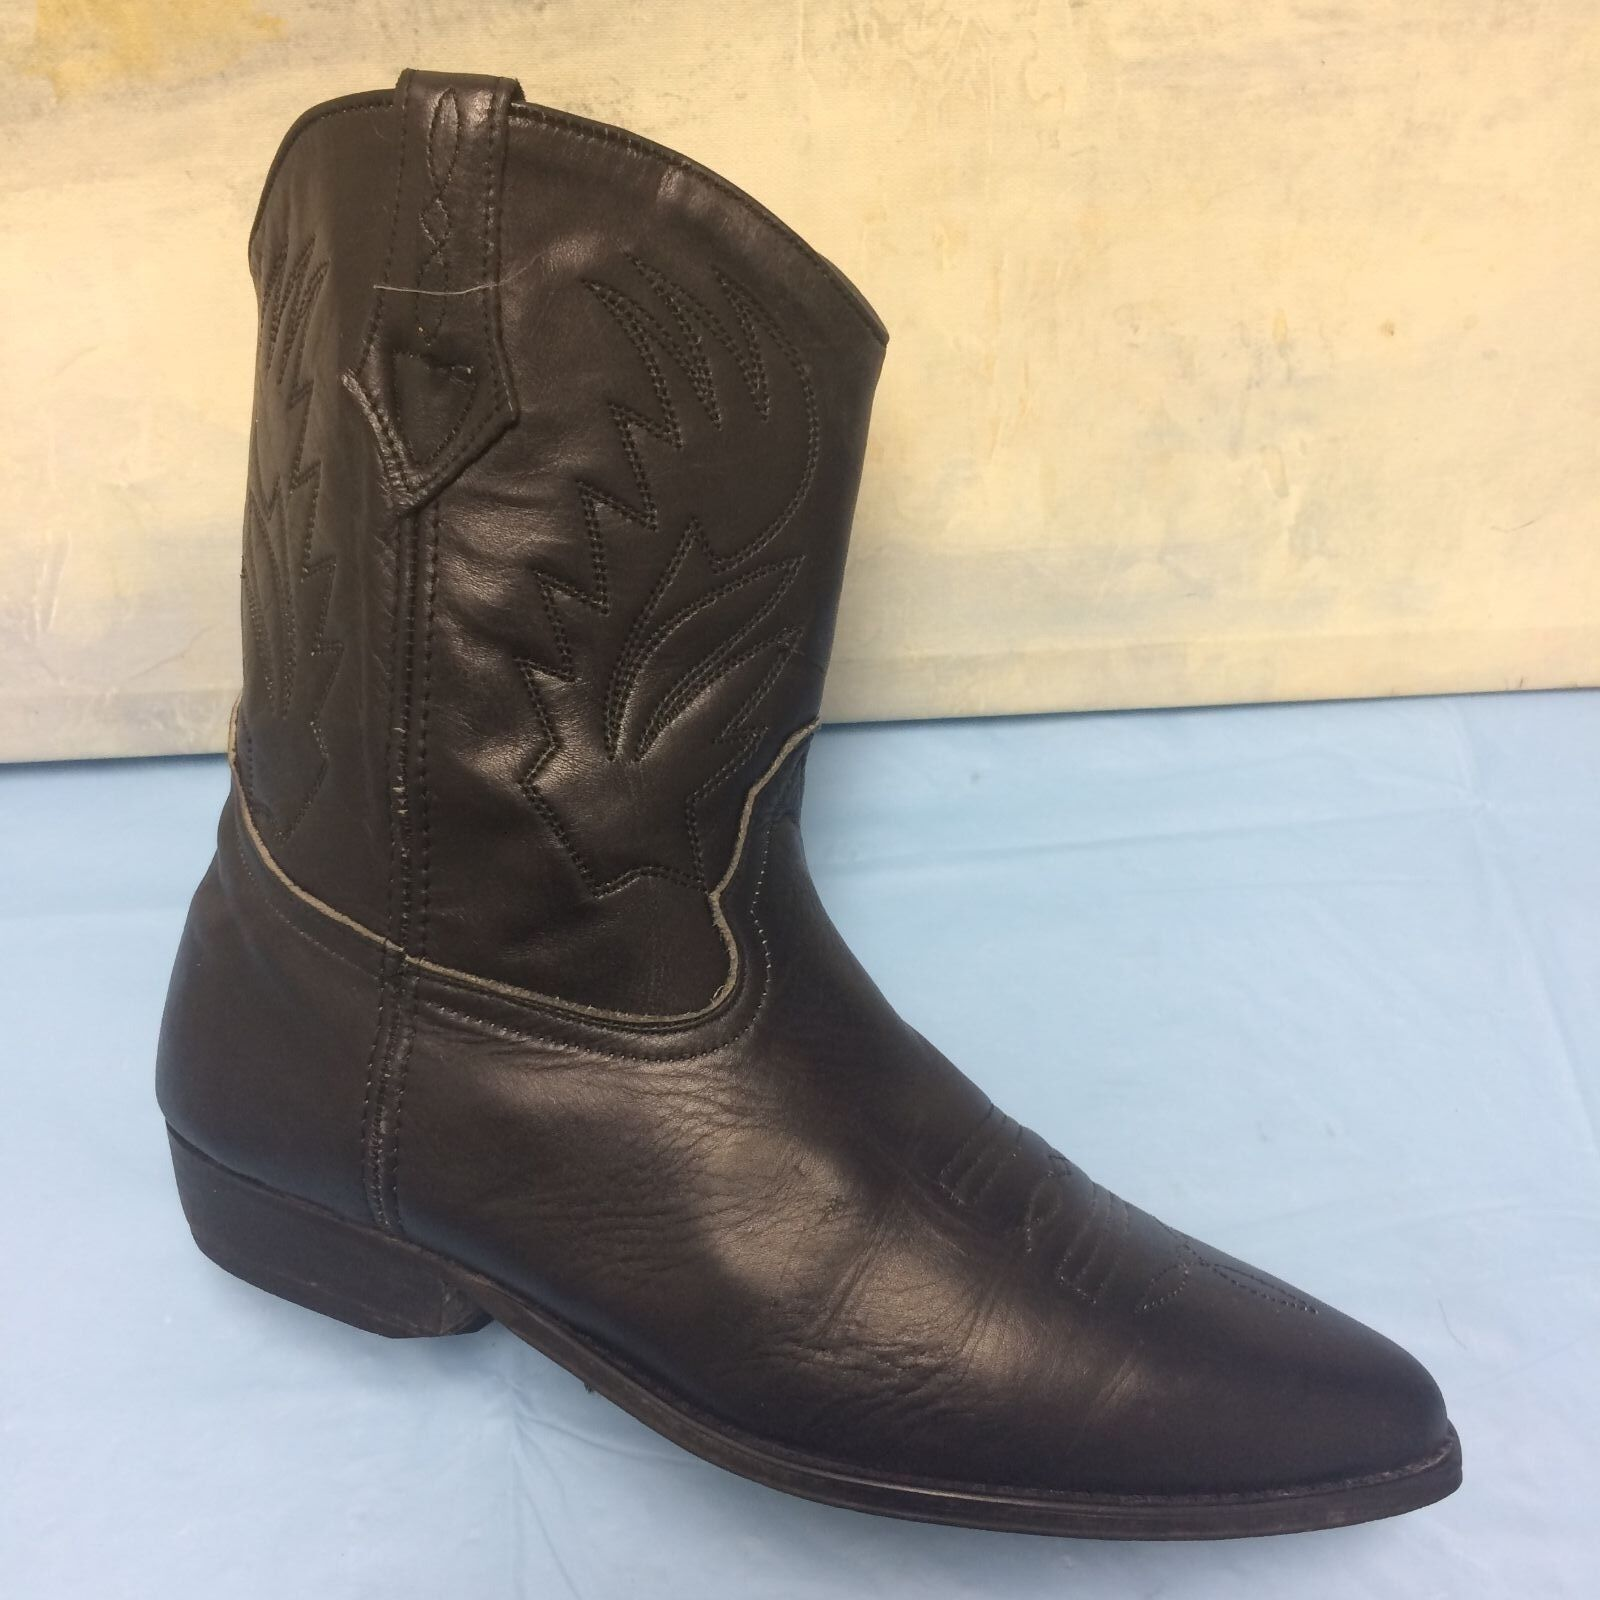 Victoria Spenser Black Leather Heel short Boots Size 8 M